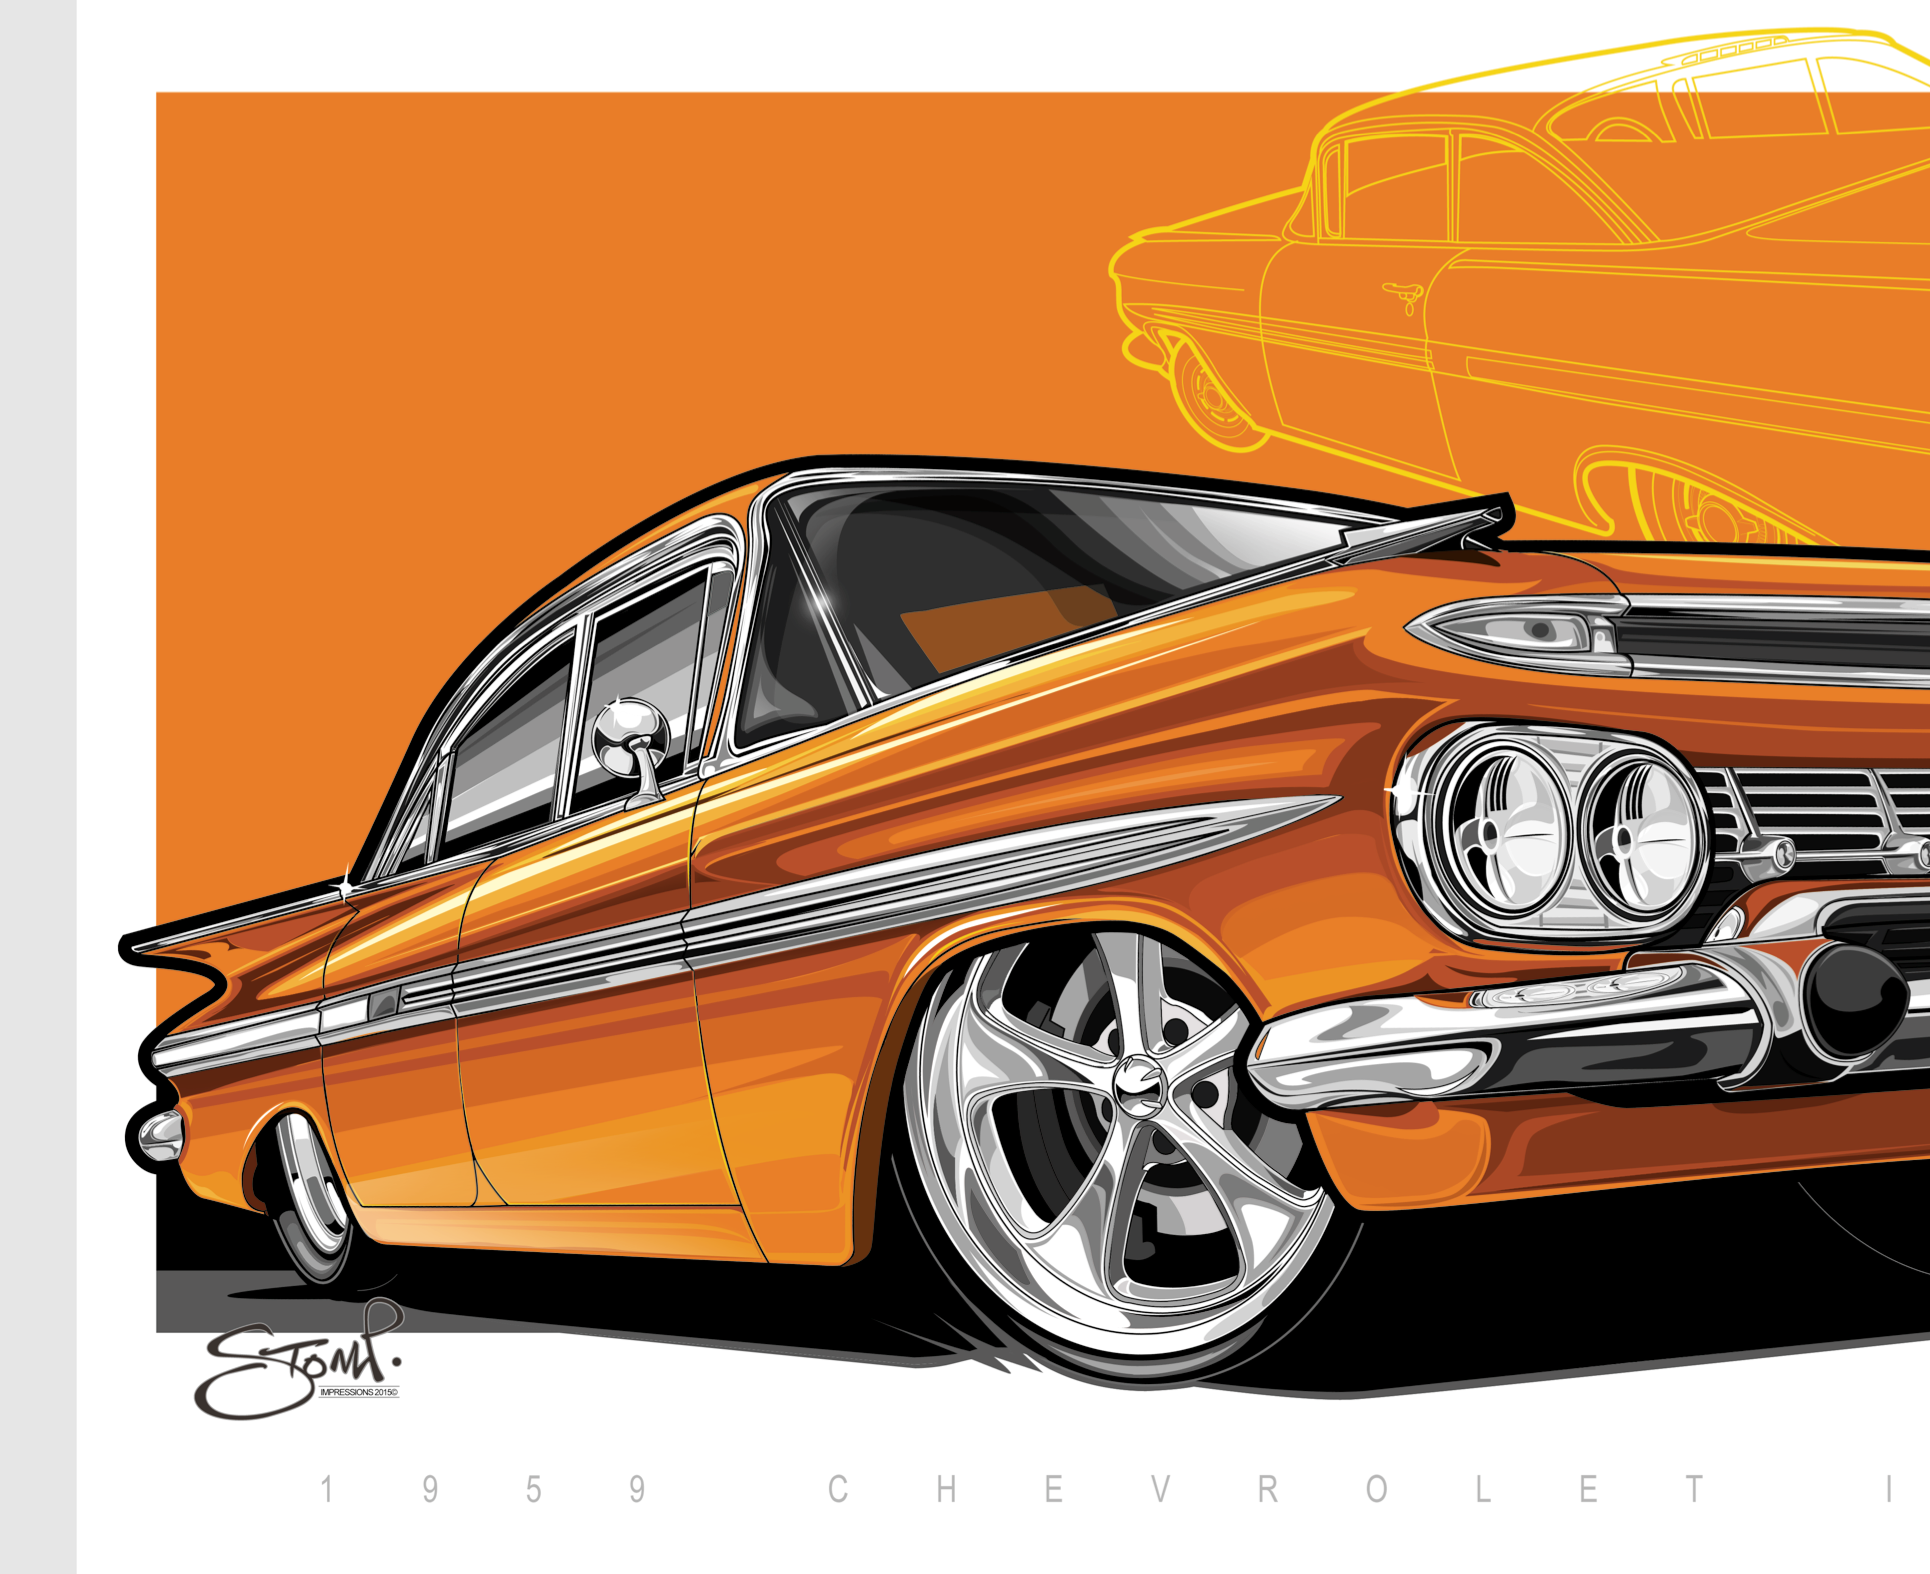 Chevrolet Impala Muscle Car Artwork Stomp Impressions